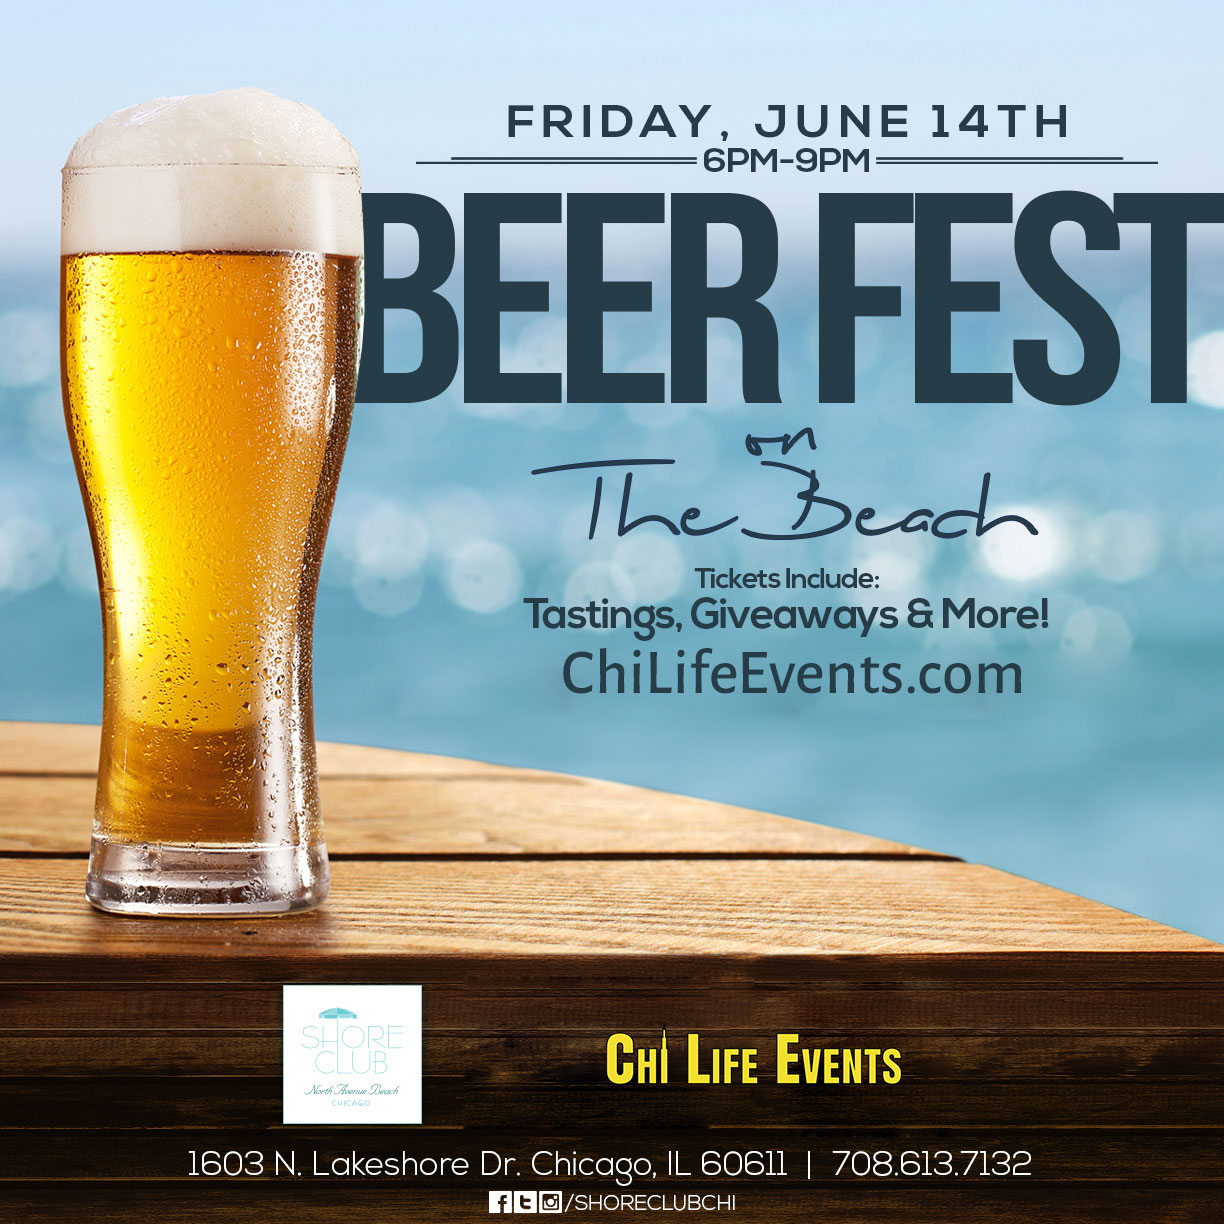 Beer Festival and Tasting at Northe Avenue Beach - Tickets include beer tastings, giveaways & MORE! We will have a variety of different beers available for sampling!